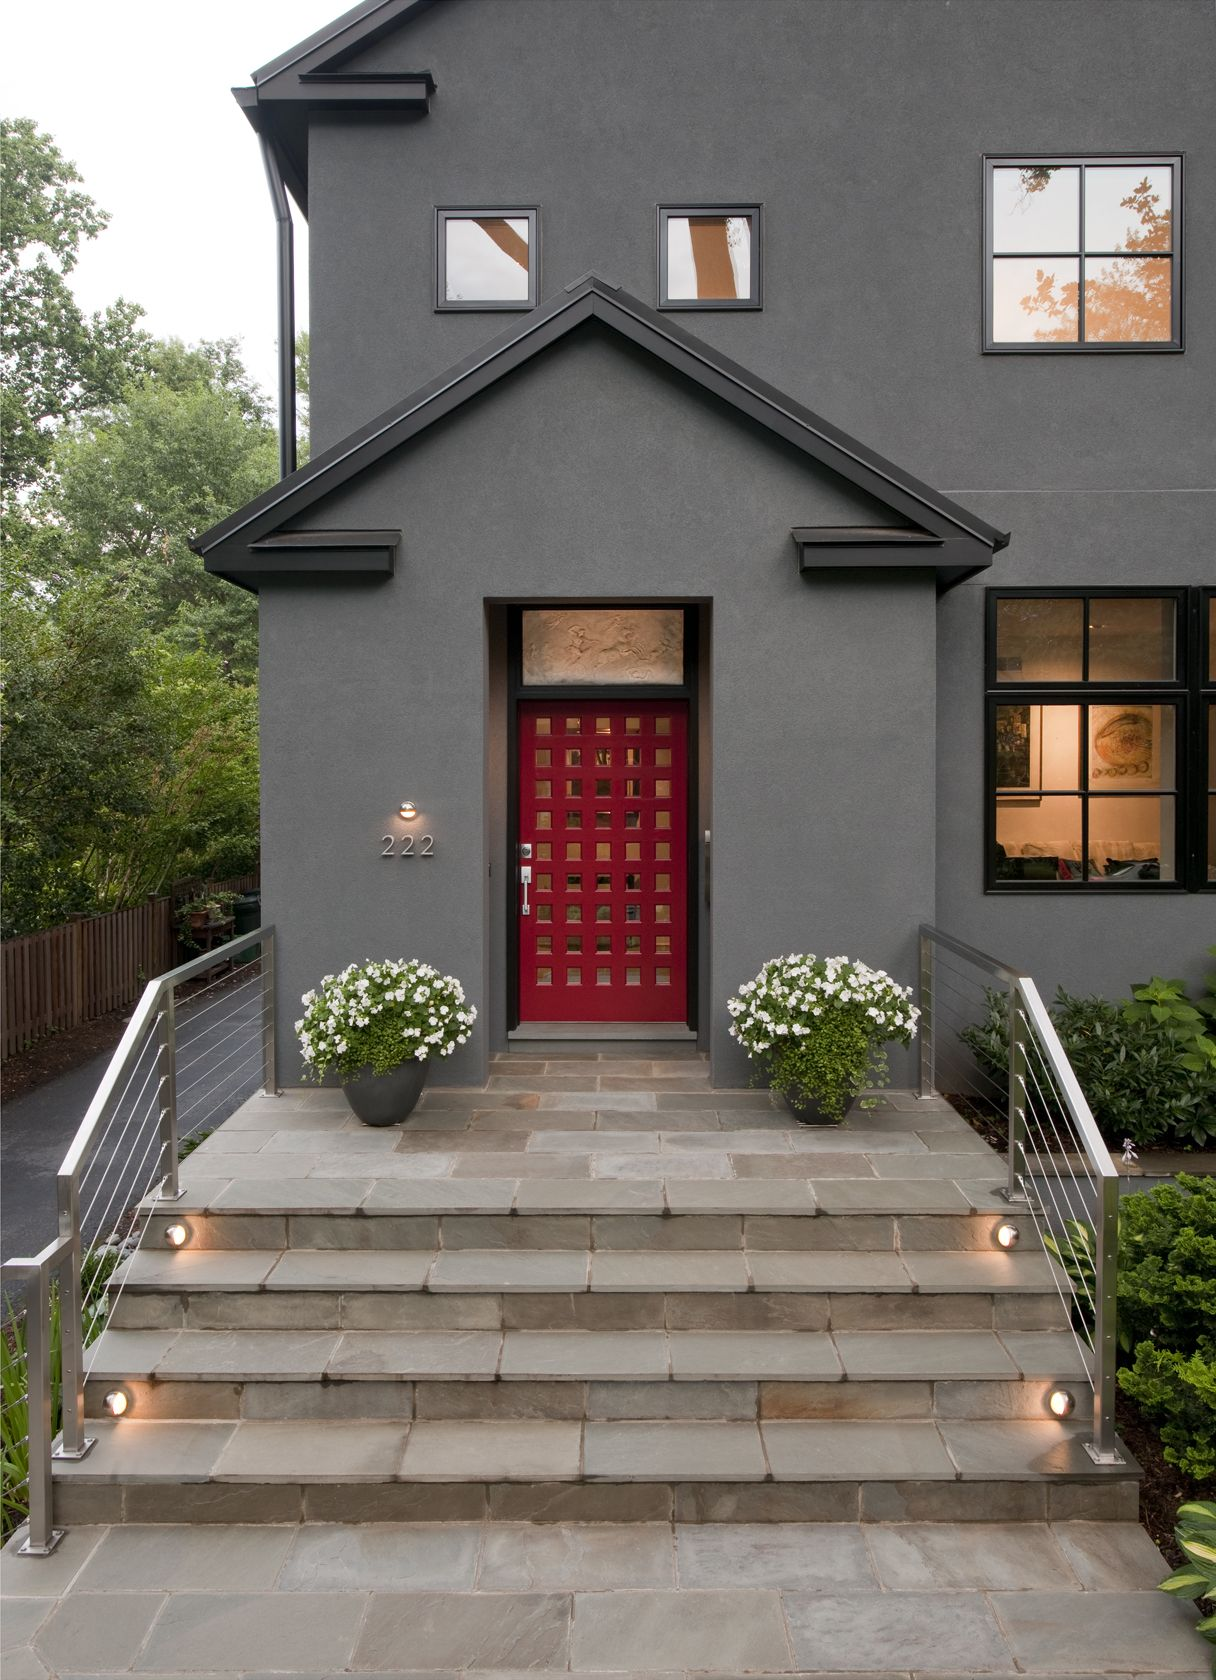 Stone Steps Lead To A Contemporary Red Door With Unique Window